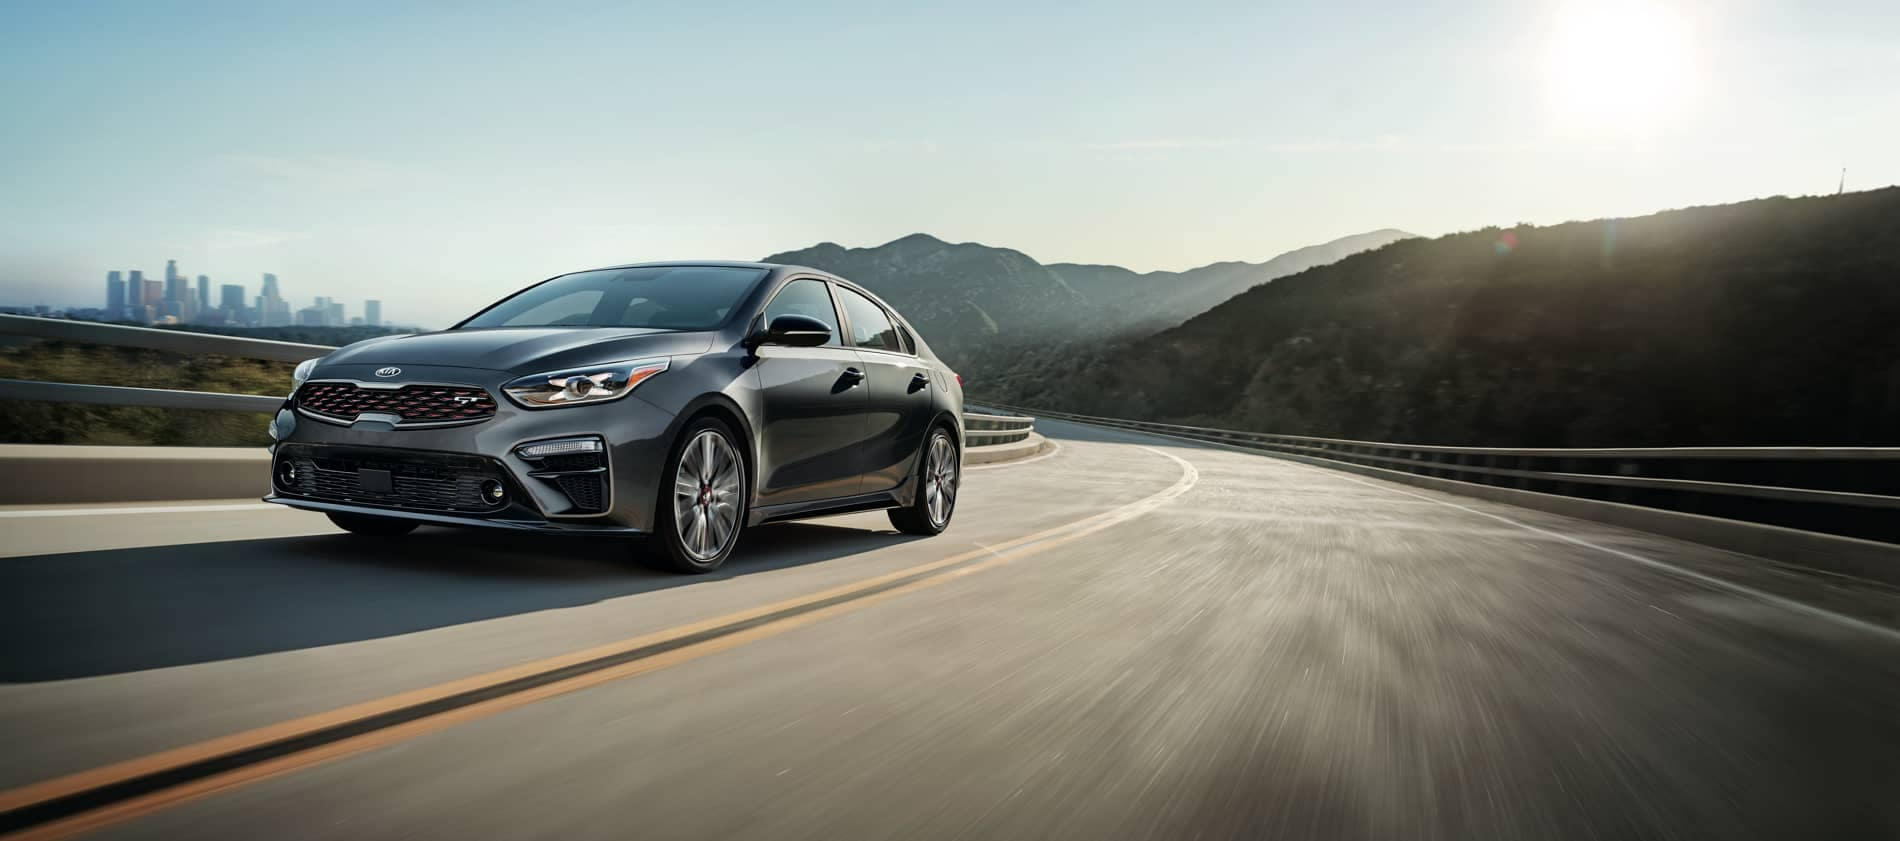 2020 Kia Forte driving on winding highway